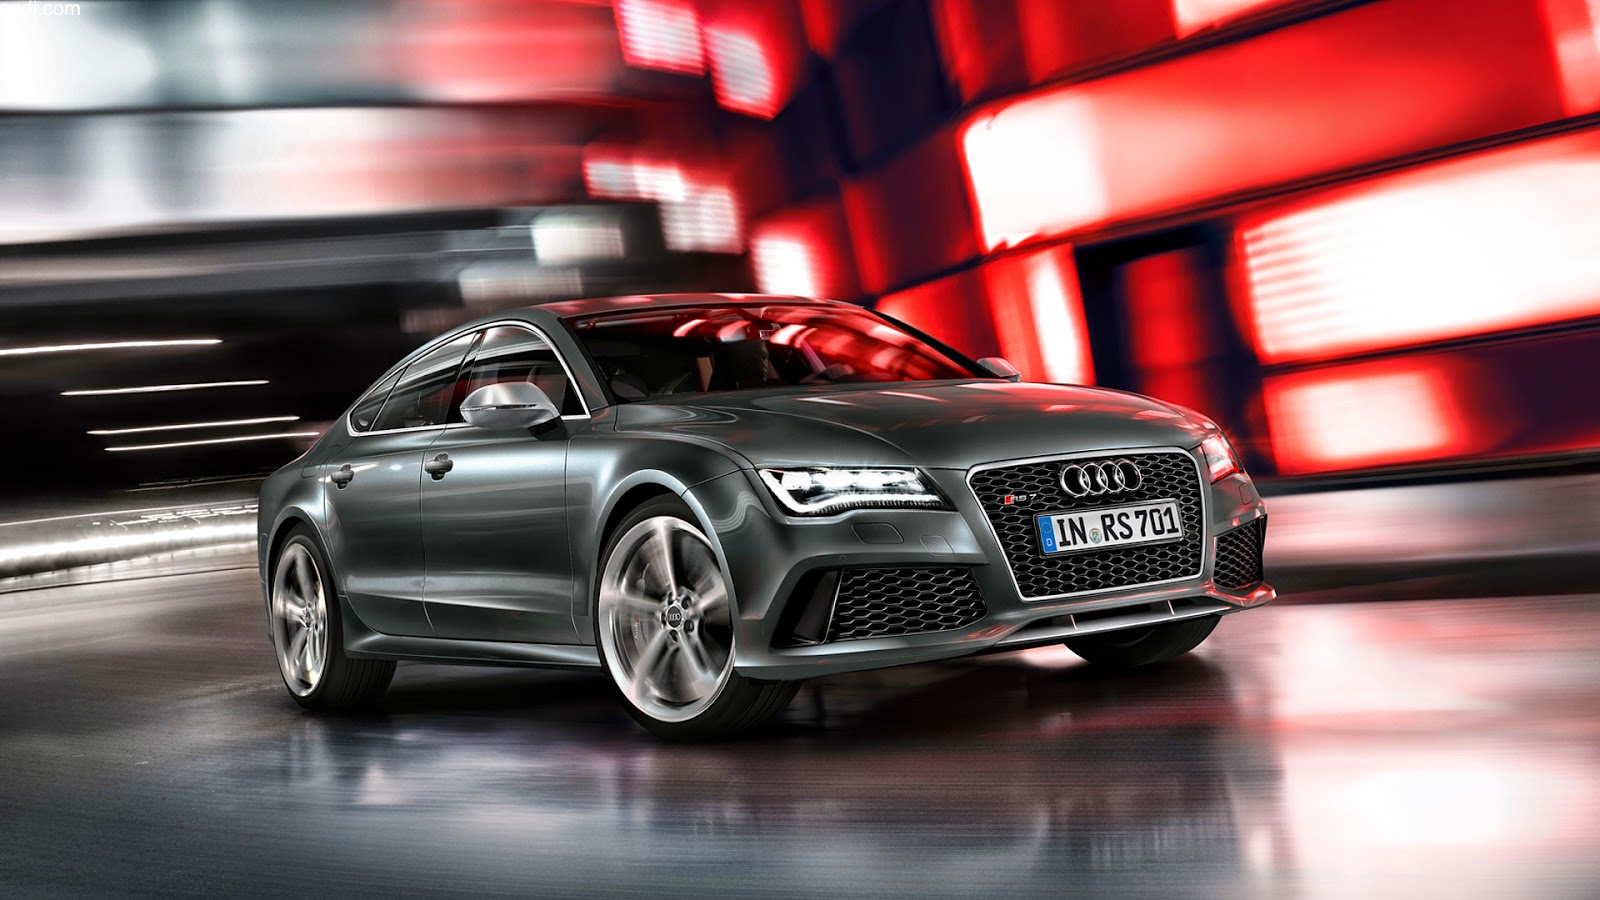 audi rs7 sportback hd images hd wallpaper with cars jokercars super car. Black Bedroom Furniture Sets. Home Design Ideas